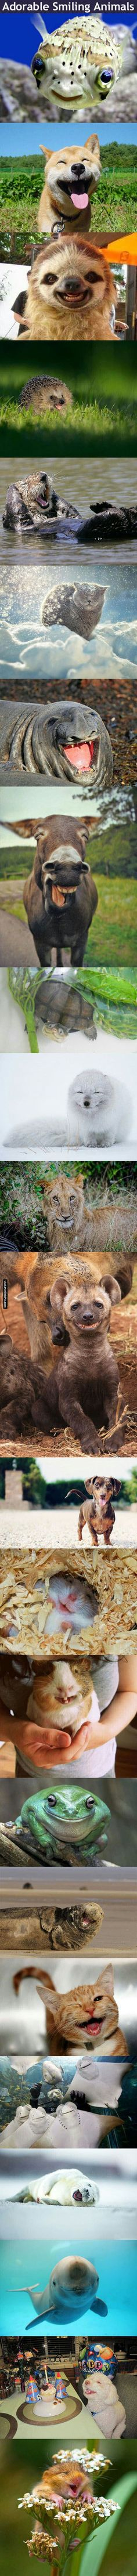 Adorable Smiling Animals cute animals dogs adorable dog puppy animal pets funny pictures funny animals